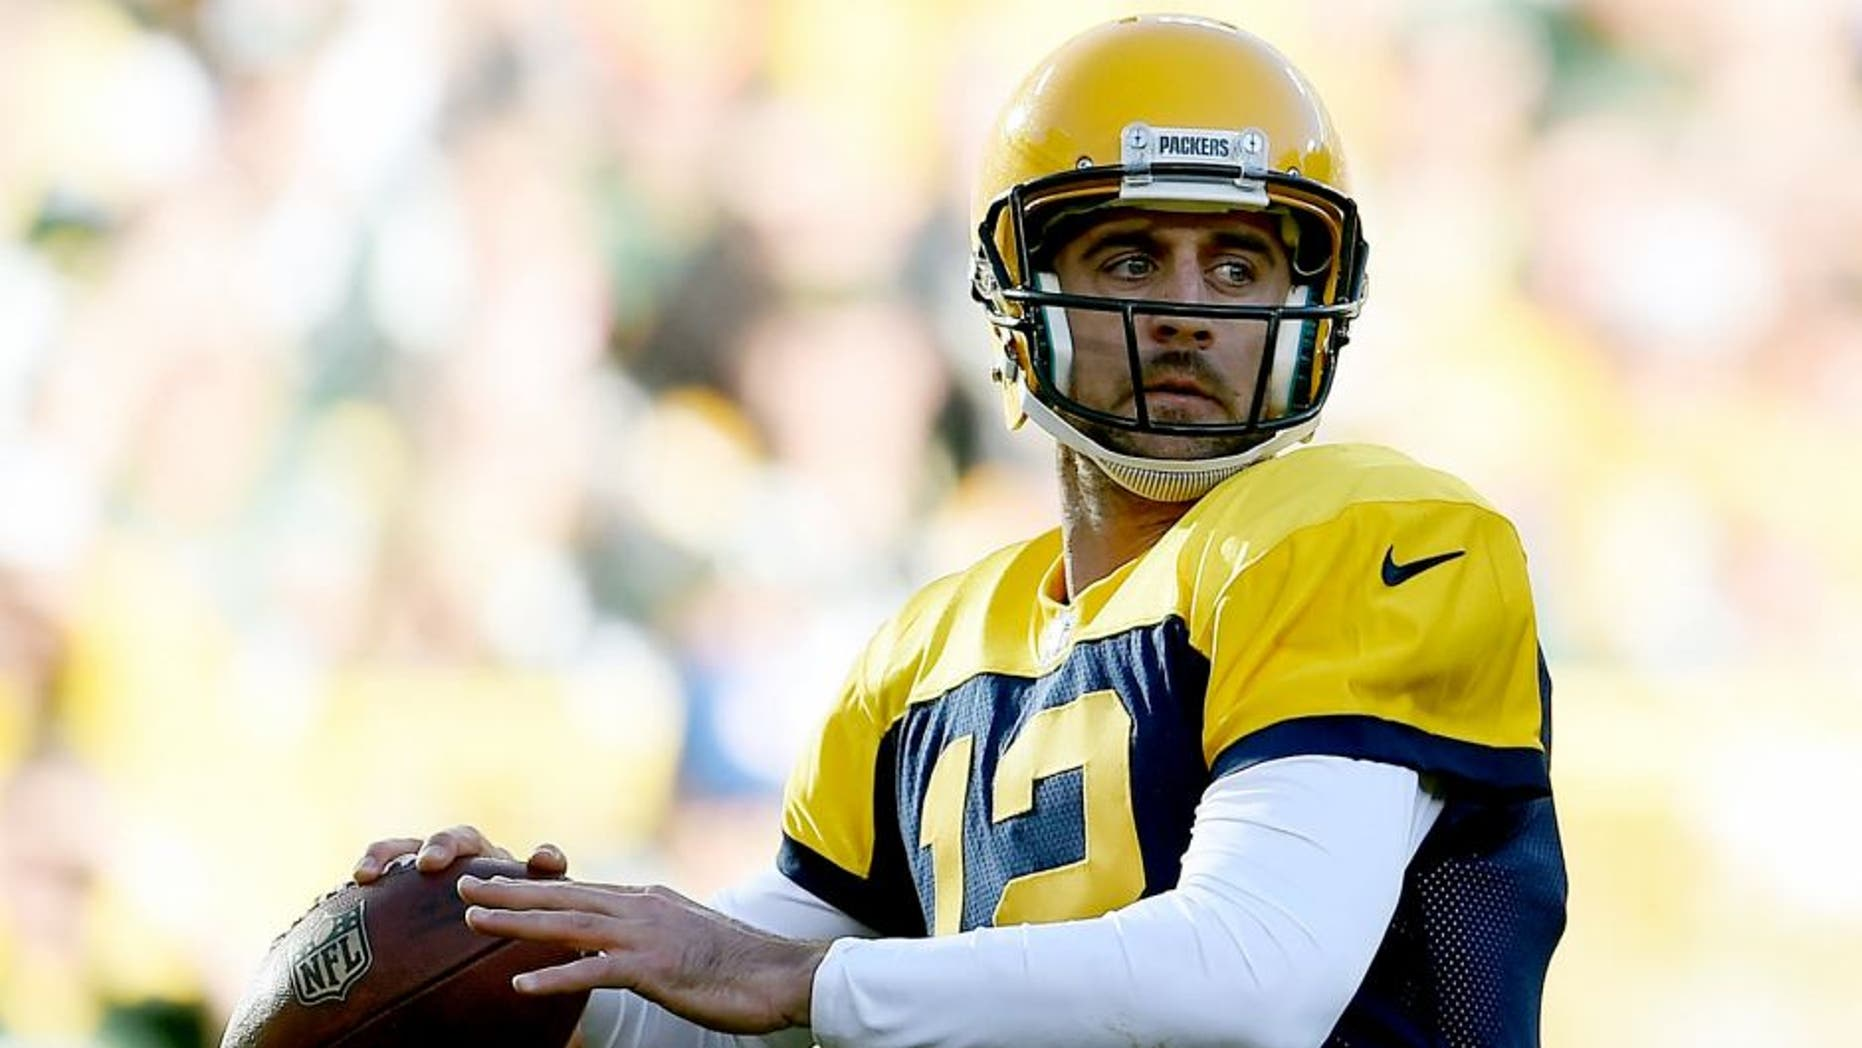 GREEN BAY, WI - OCTOBER 18: Aaron Rodgers #12 of the Green Bay Packers drops back to pass during a game against the San Diego Chargers at Lambeau Field on October 18, 2015 in Green Bay, Wisconsin. Green Bay defeated San Diego 27-20. (Photo by Stacy Revere/Getty Images)